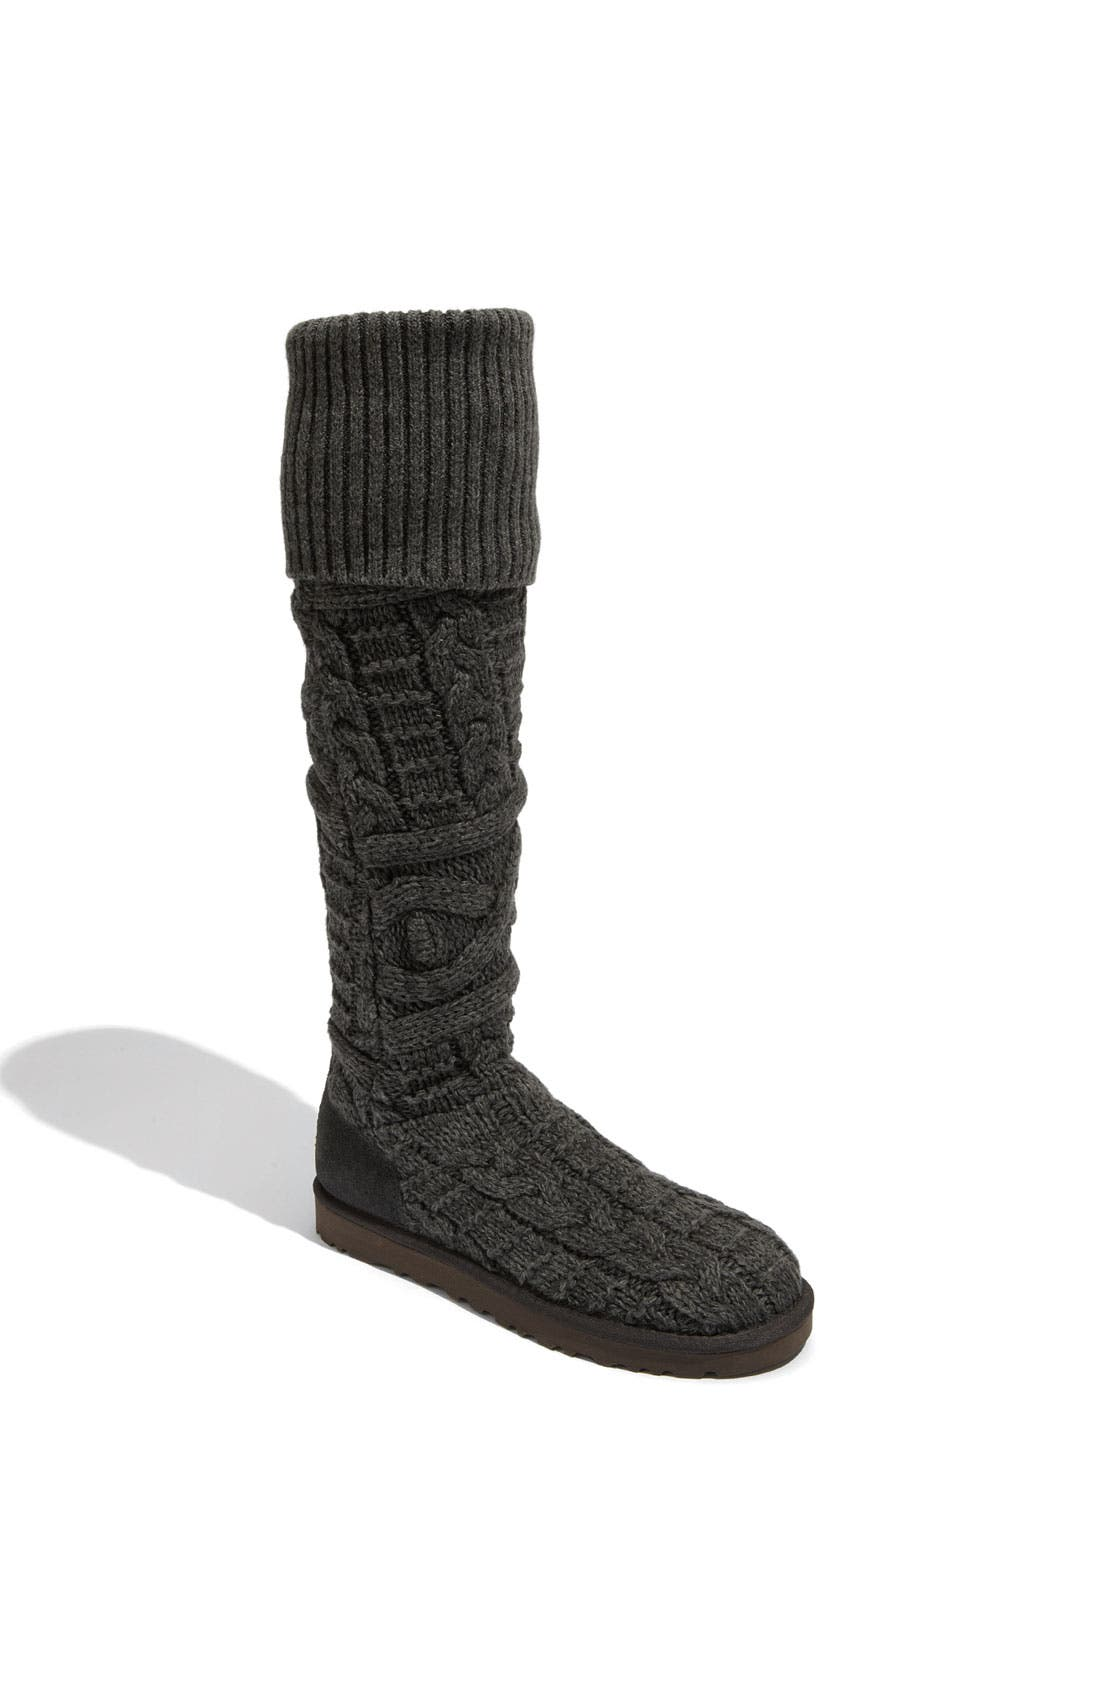 Alternate Image 1 Selected - UGG® Australia 'Twisted Cable' Over the Knee Boot